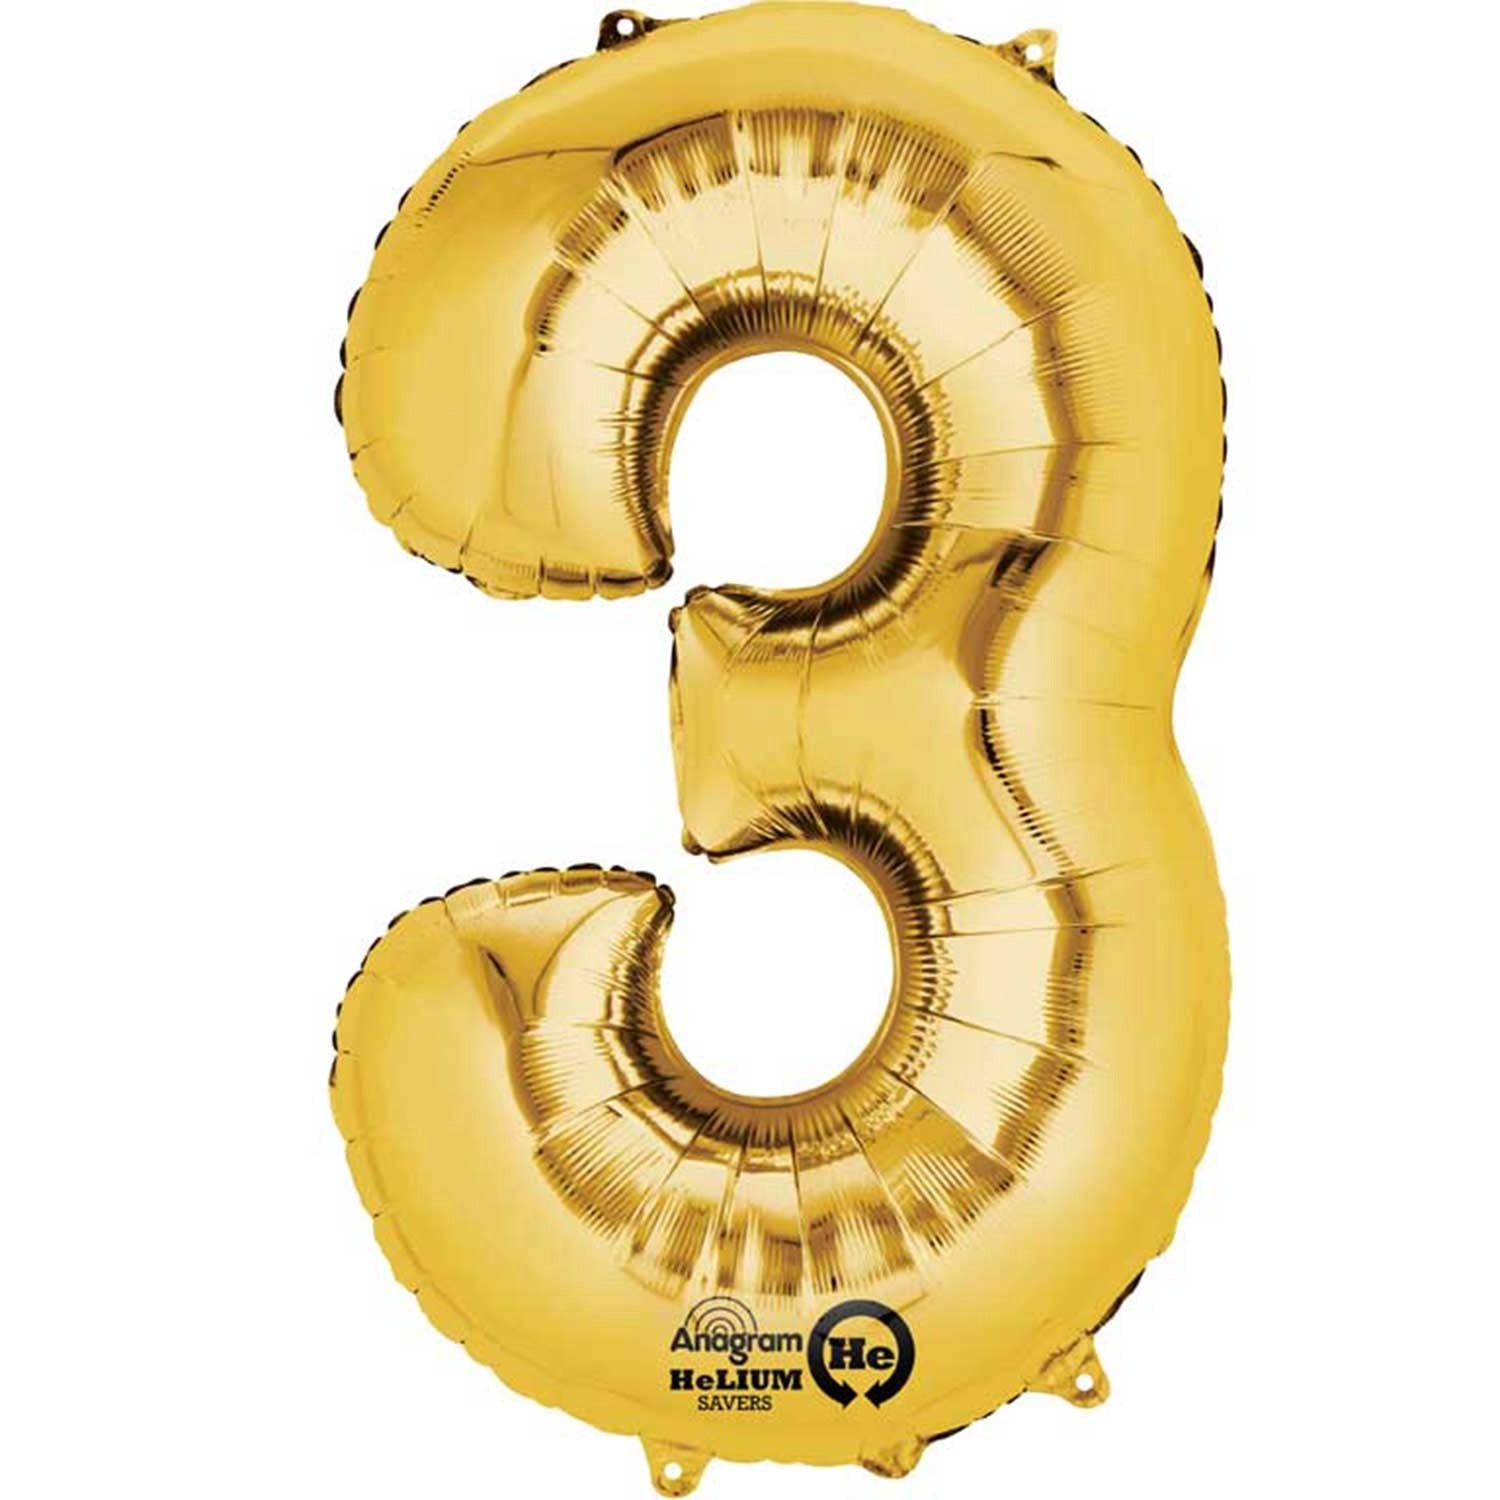 GOLD 3 LARGE NUMBER FOIL BALLOON from Flingers Party World Bristol Harbourside who offer a huge range of fancy dress costumes and partyware items